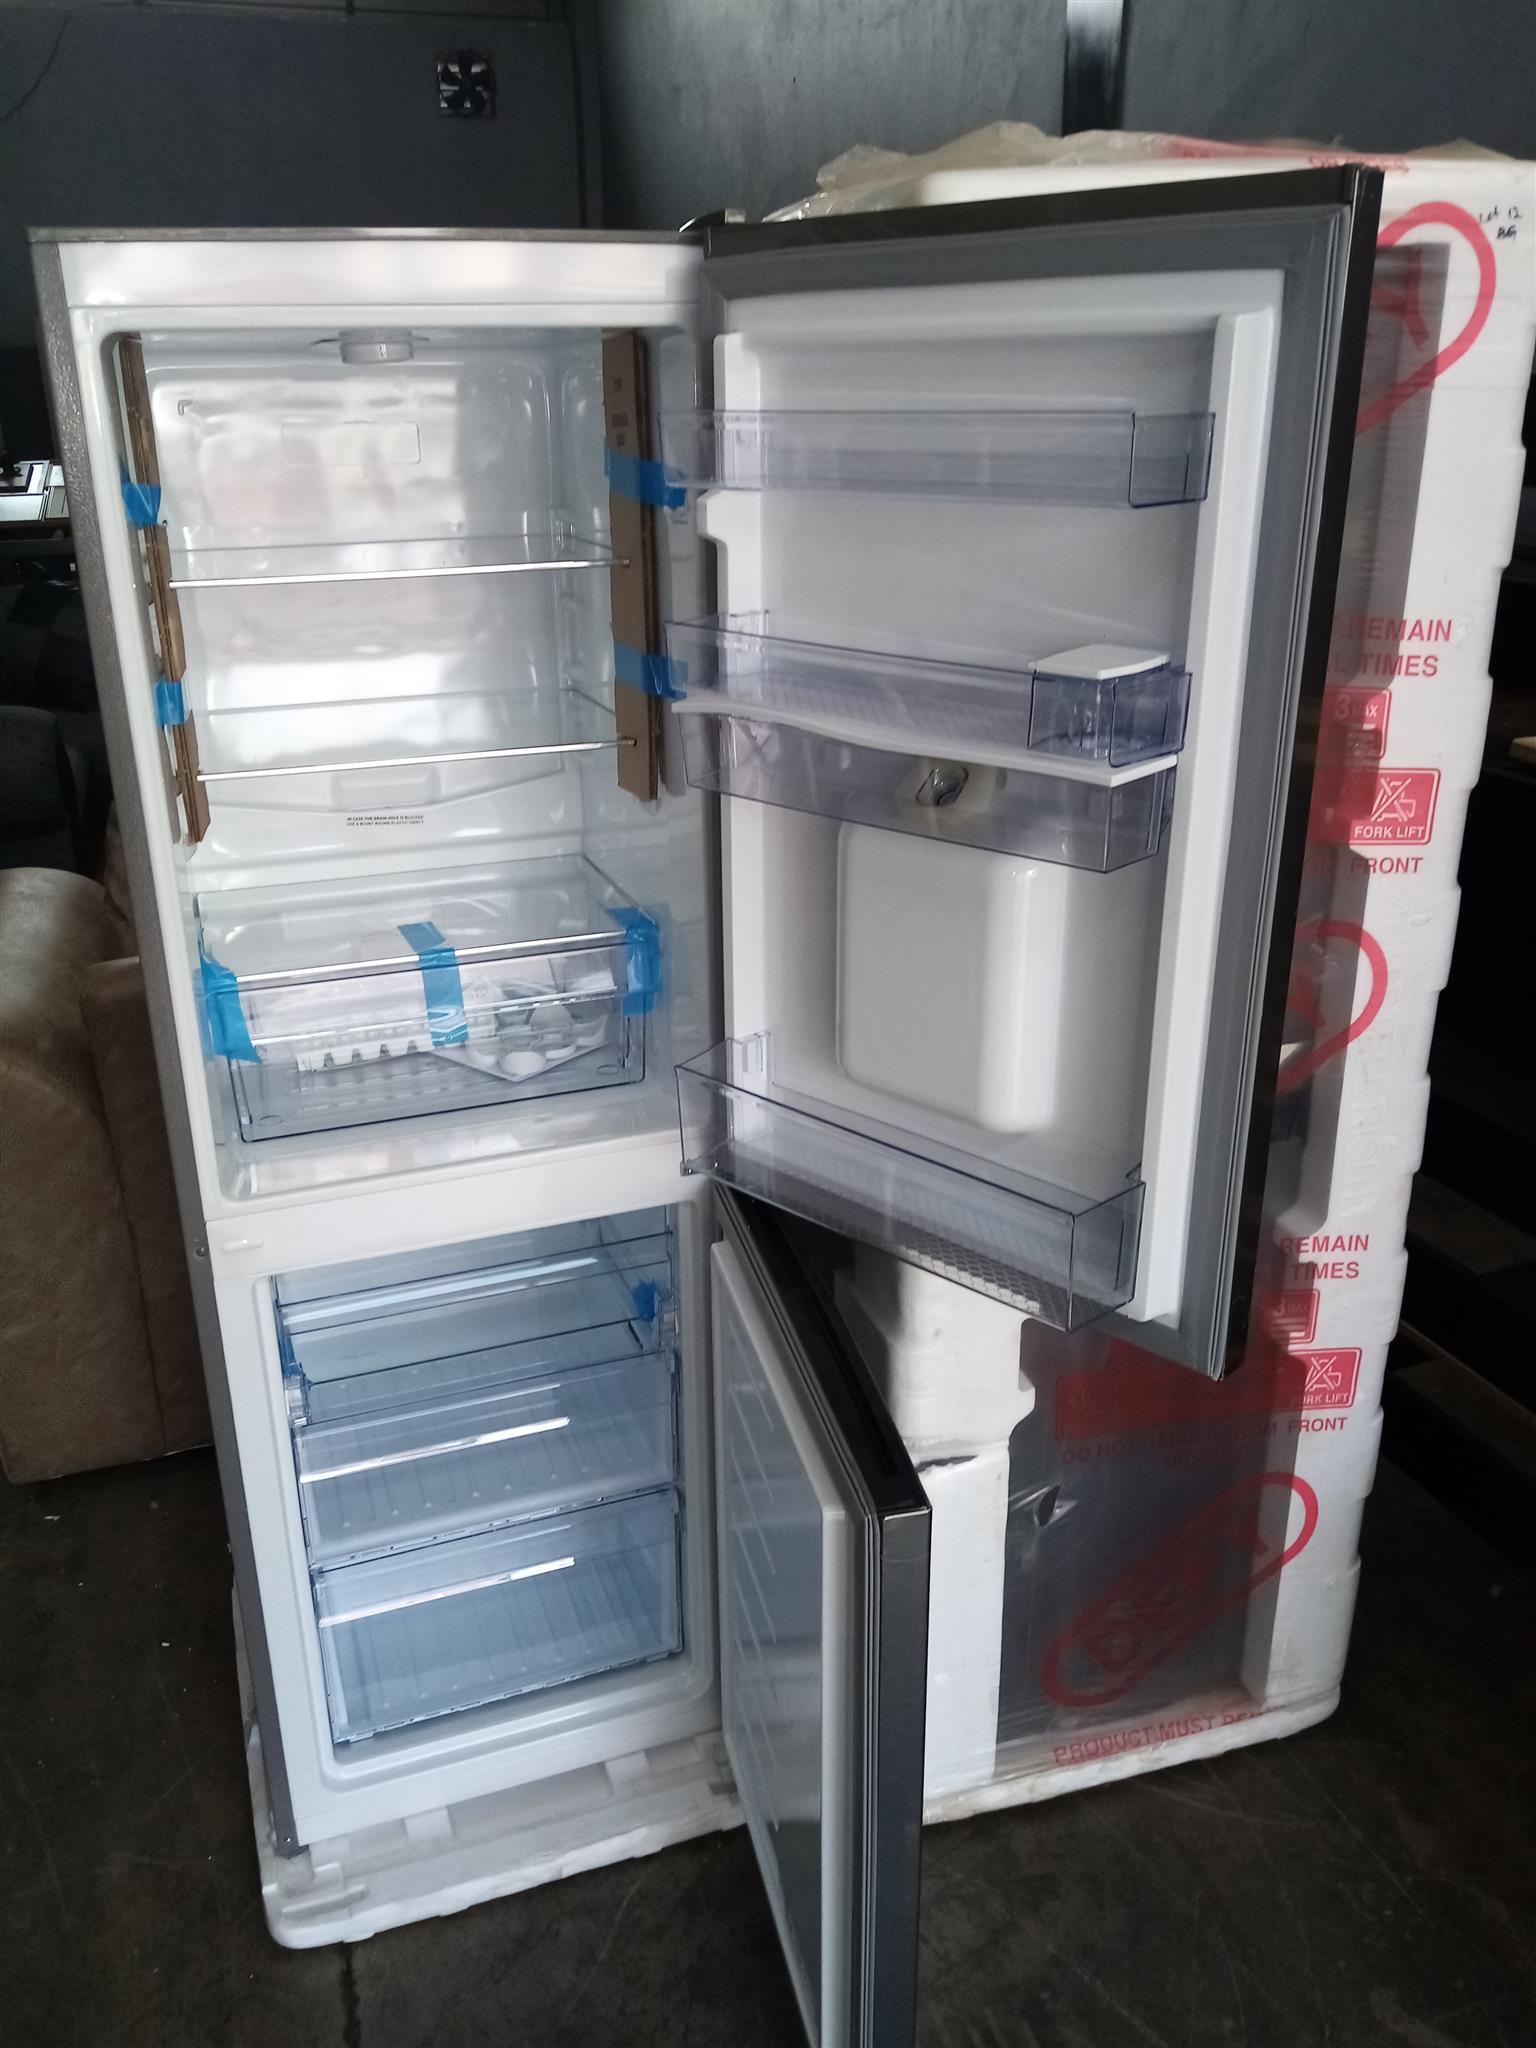 Hi I have a brand new DEFY mettalic fridge with water dispenser